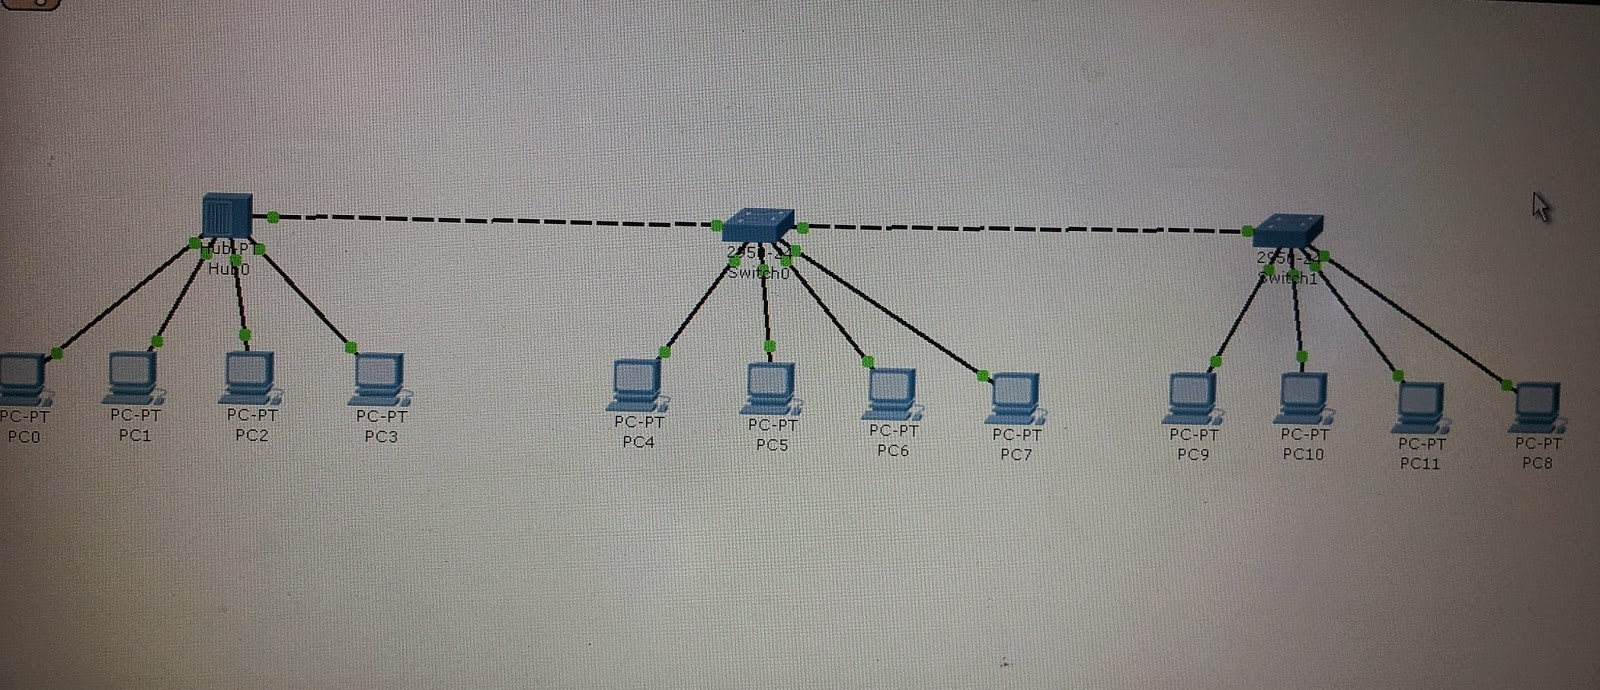 Amateur Techie The Above Diagram Shows An Ethernet Crossover Cable Pin Out For Represents A Network Consisting Of Hub And Two Switches Connected To Multiple Hosts Each Number Collision Domains Will Be 10